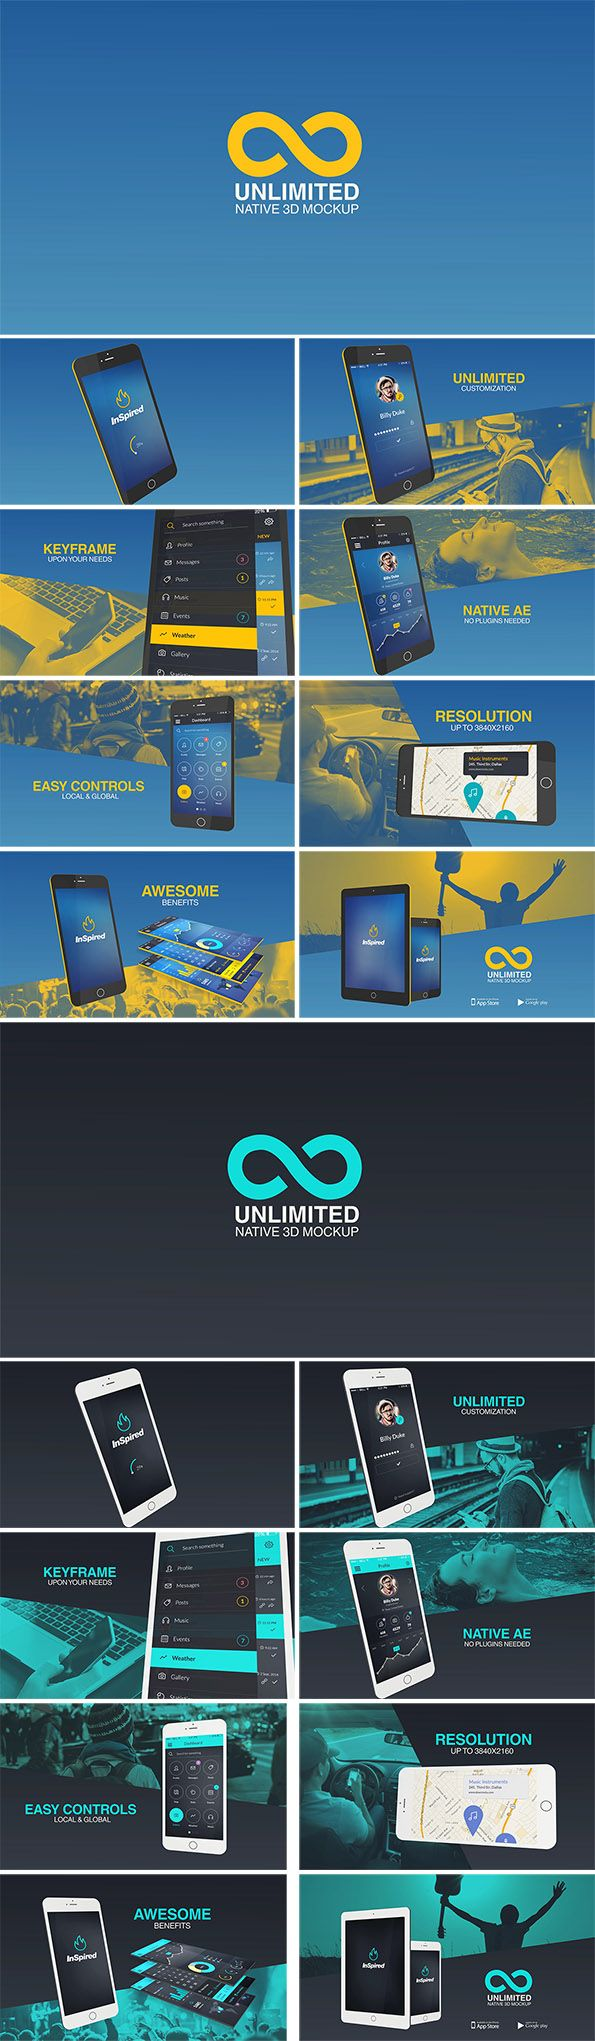 Unlimited Native 3D Mockup is a Super Customizable Application Kit for your Application Promo/Presentation/Explainer. No Plugins & no Prerenders!         Features: Native 3D Smartphone & Tablet On...